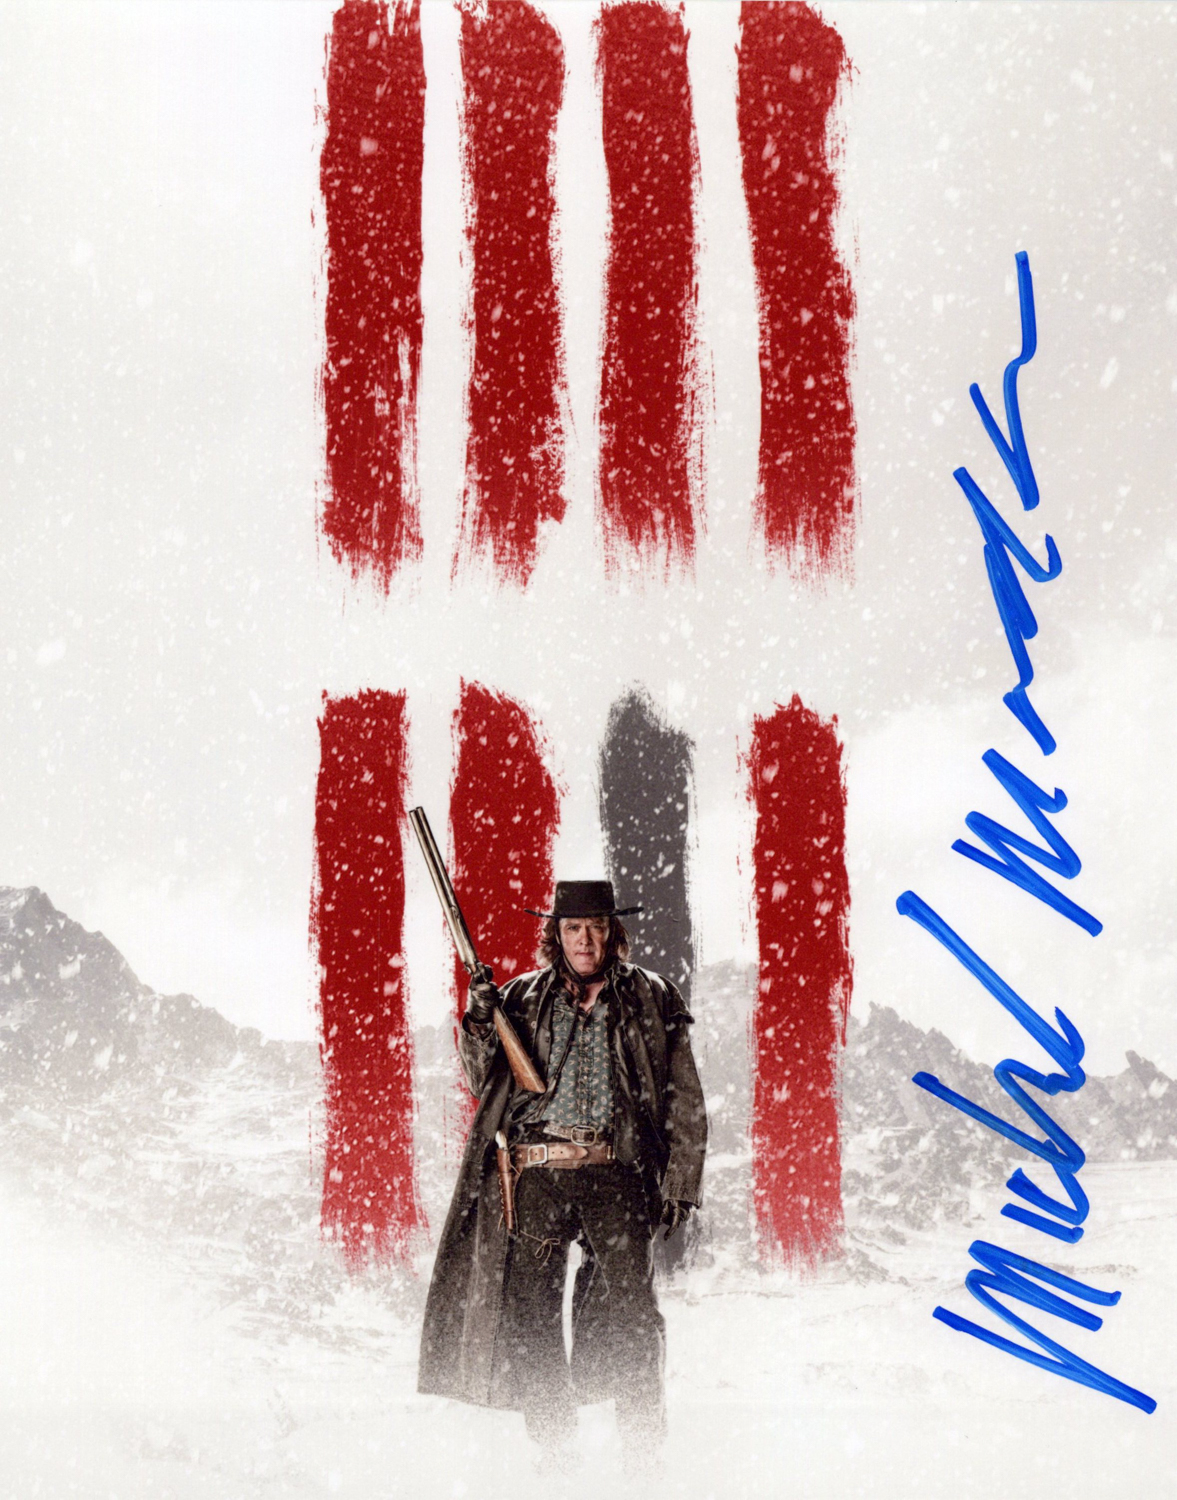 Michael Madsen Original Autogramm auf Foto 20x25cm - The Hateful 8